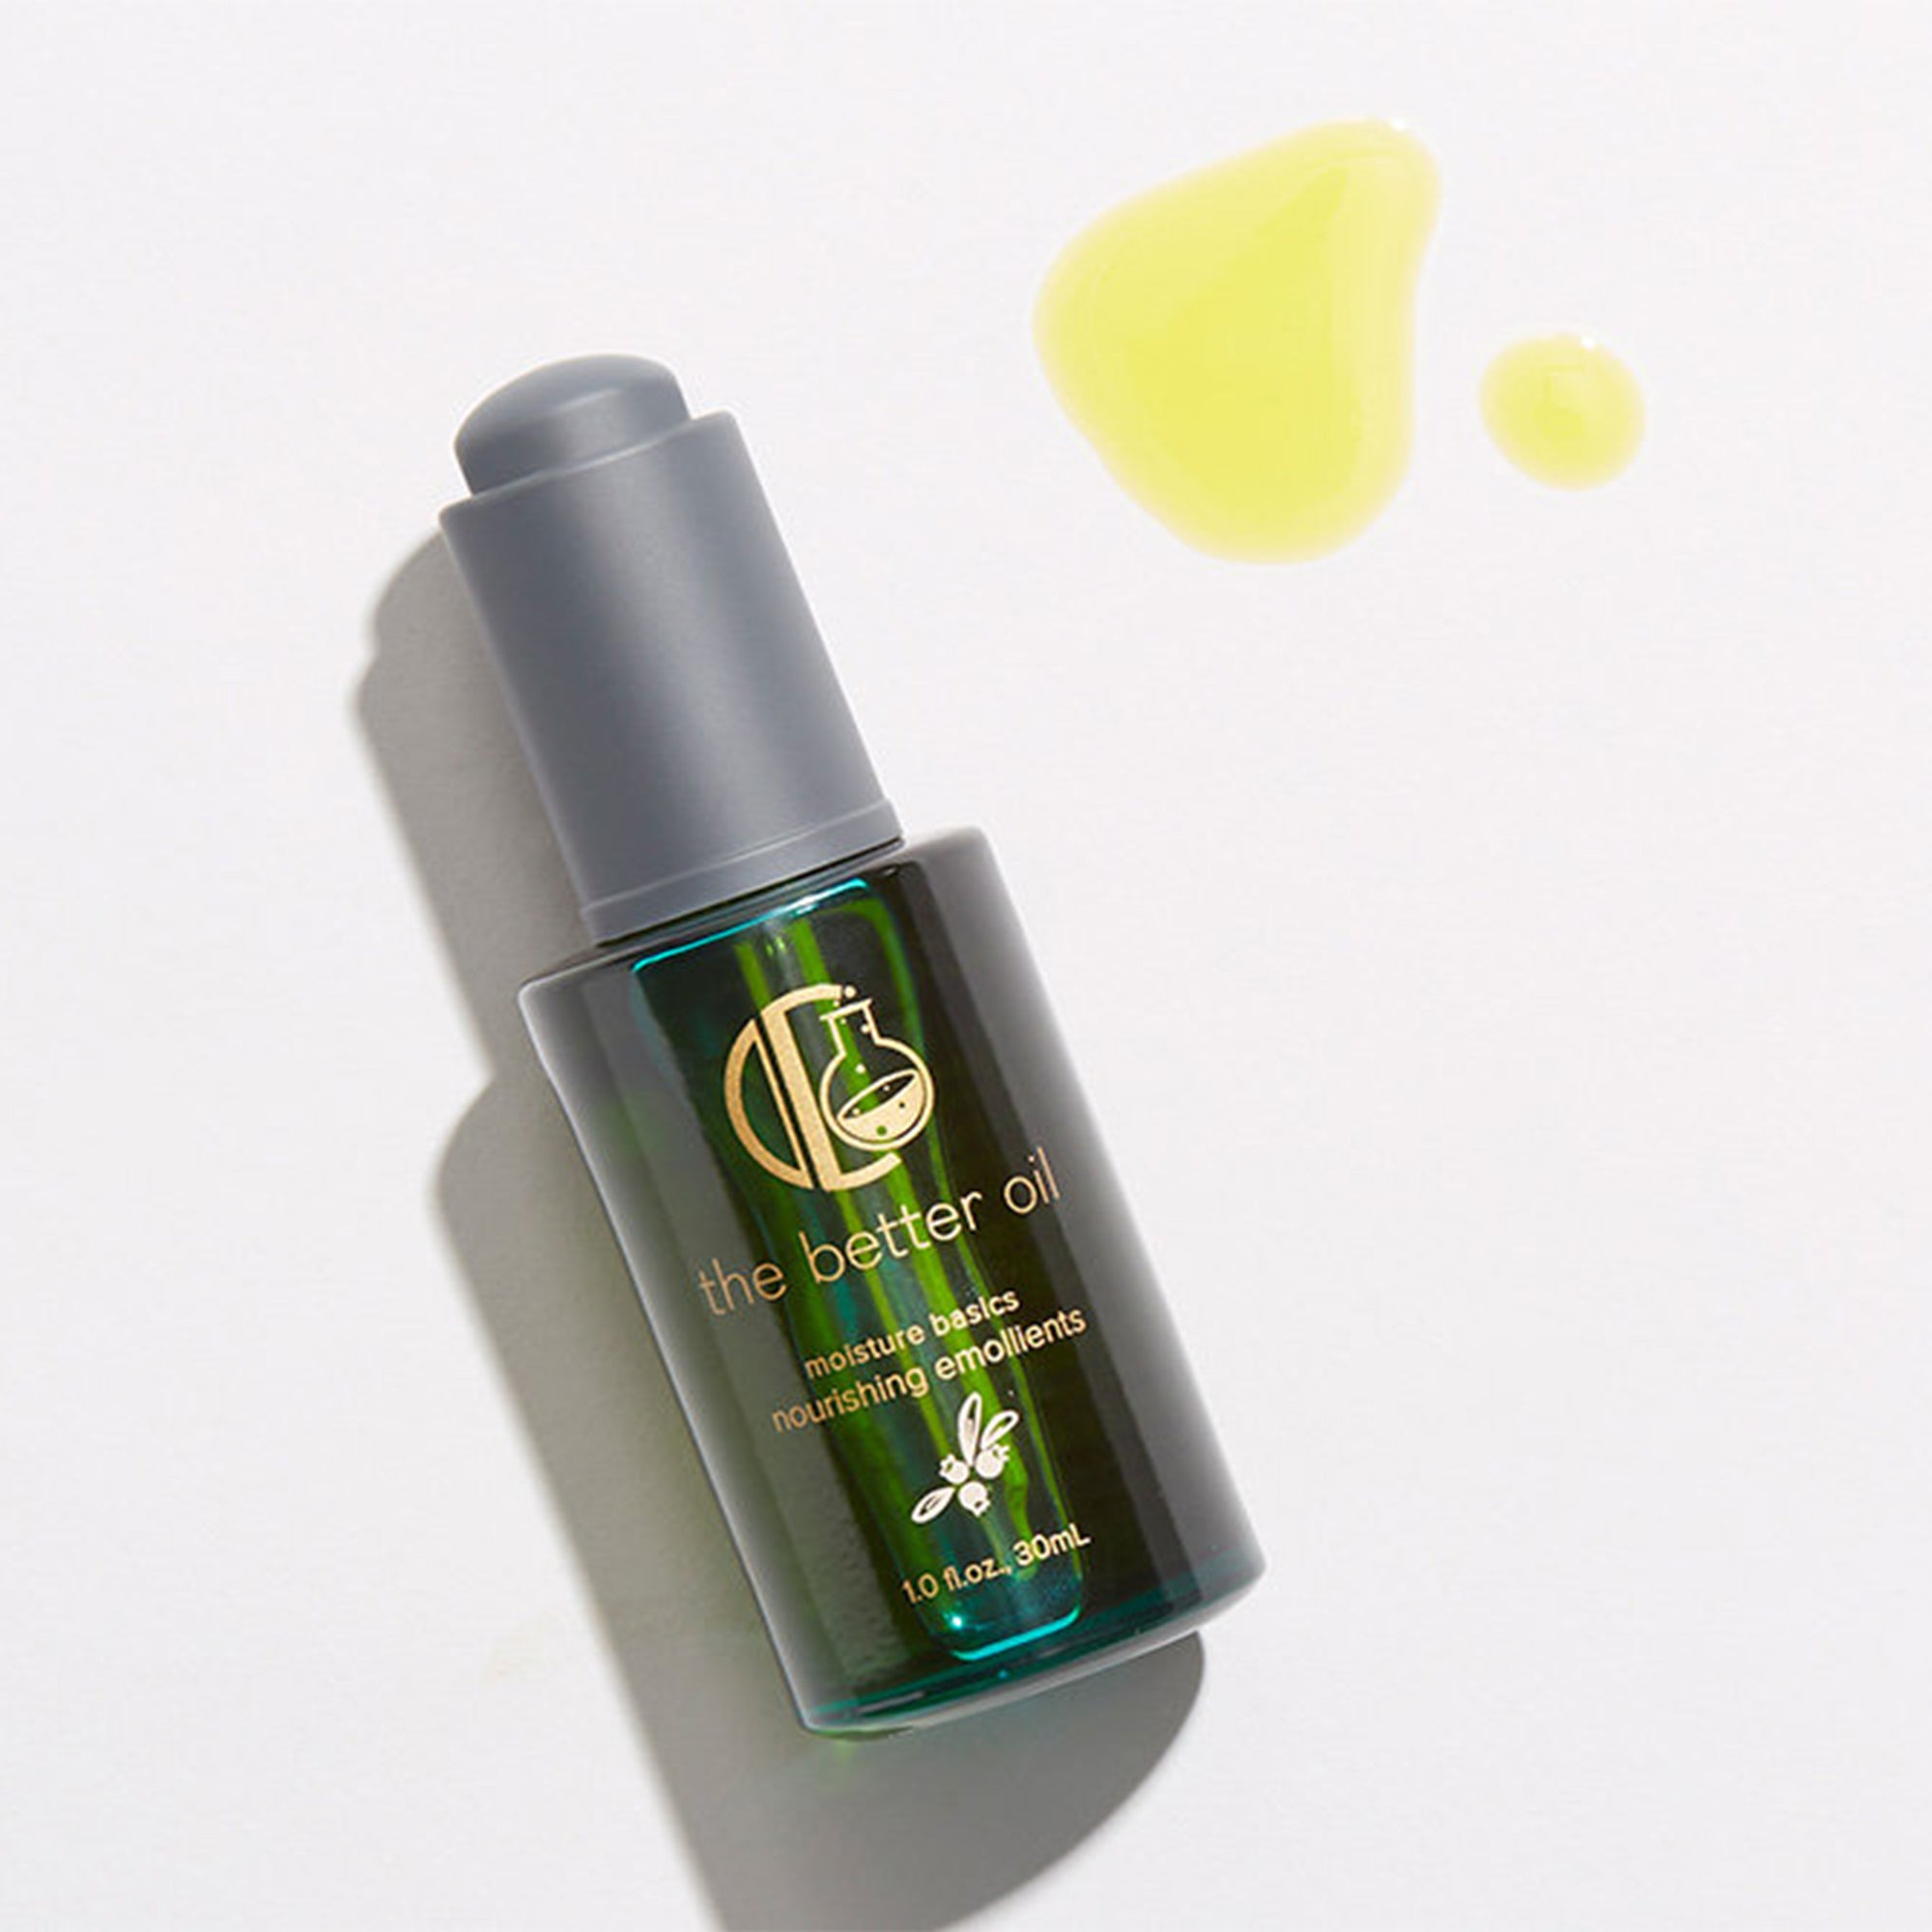 Chemist Confessions The Better Oil: Light, Nourishing Emollients